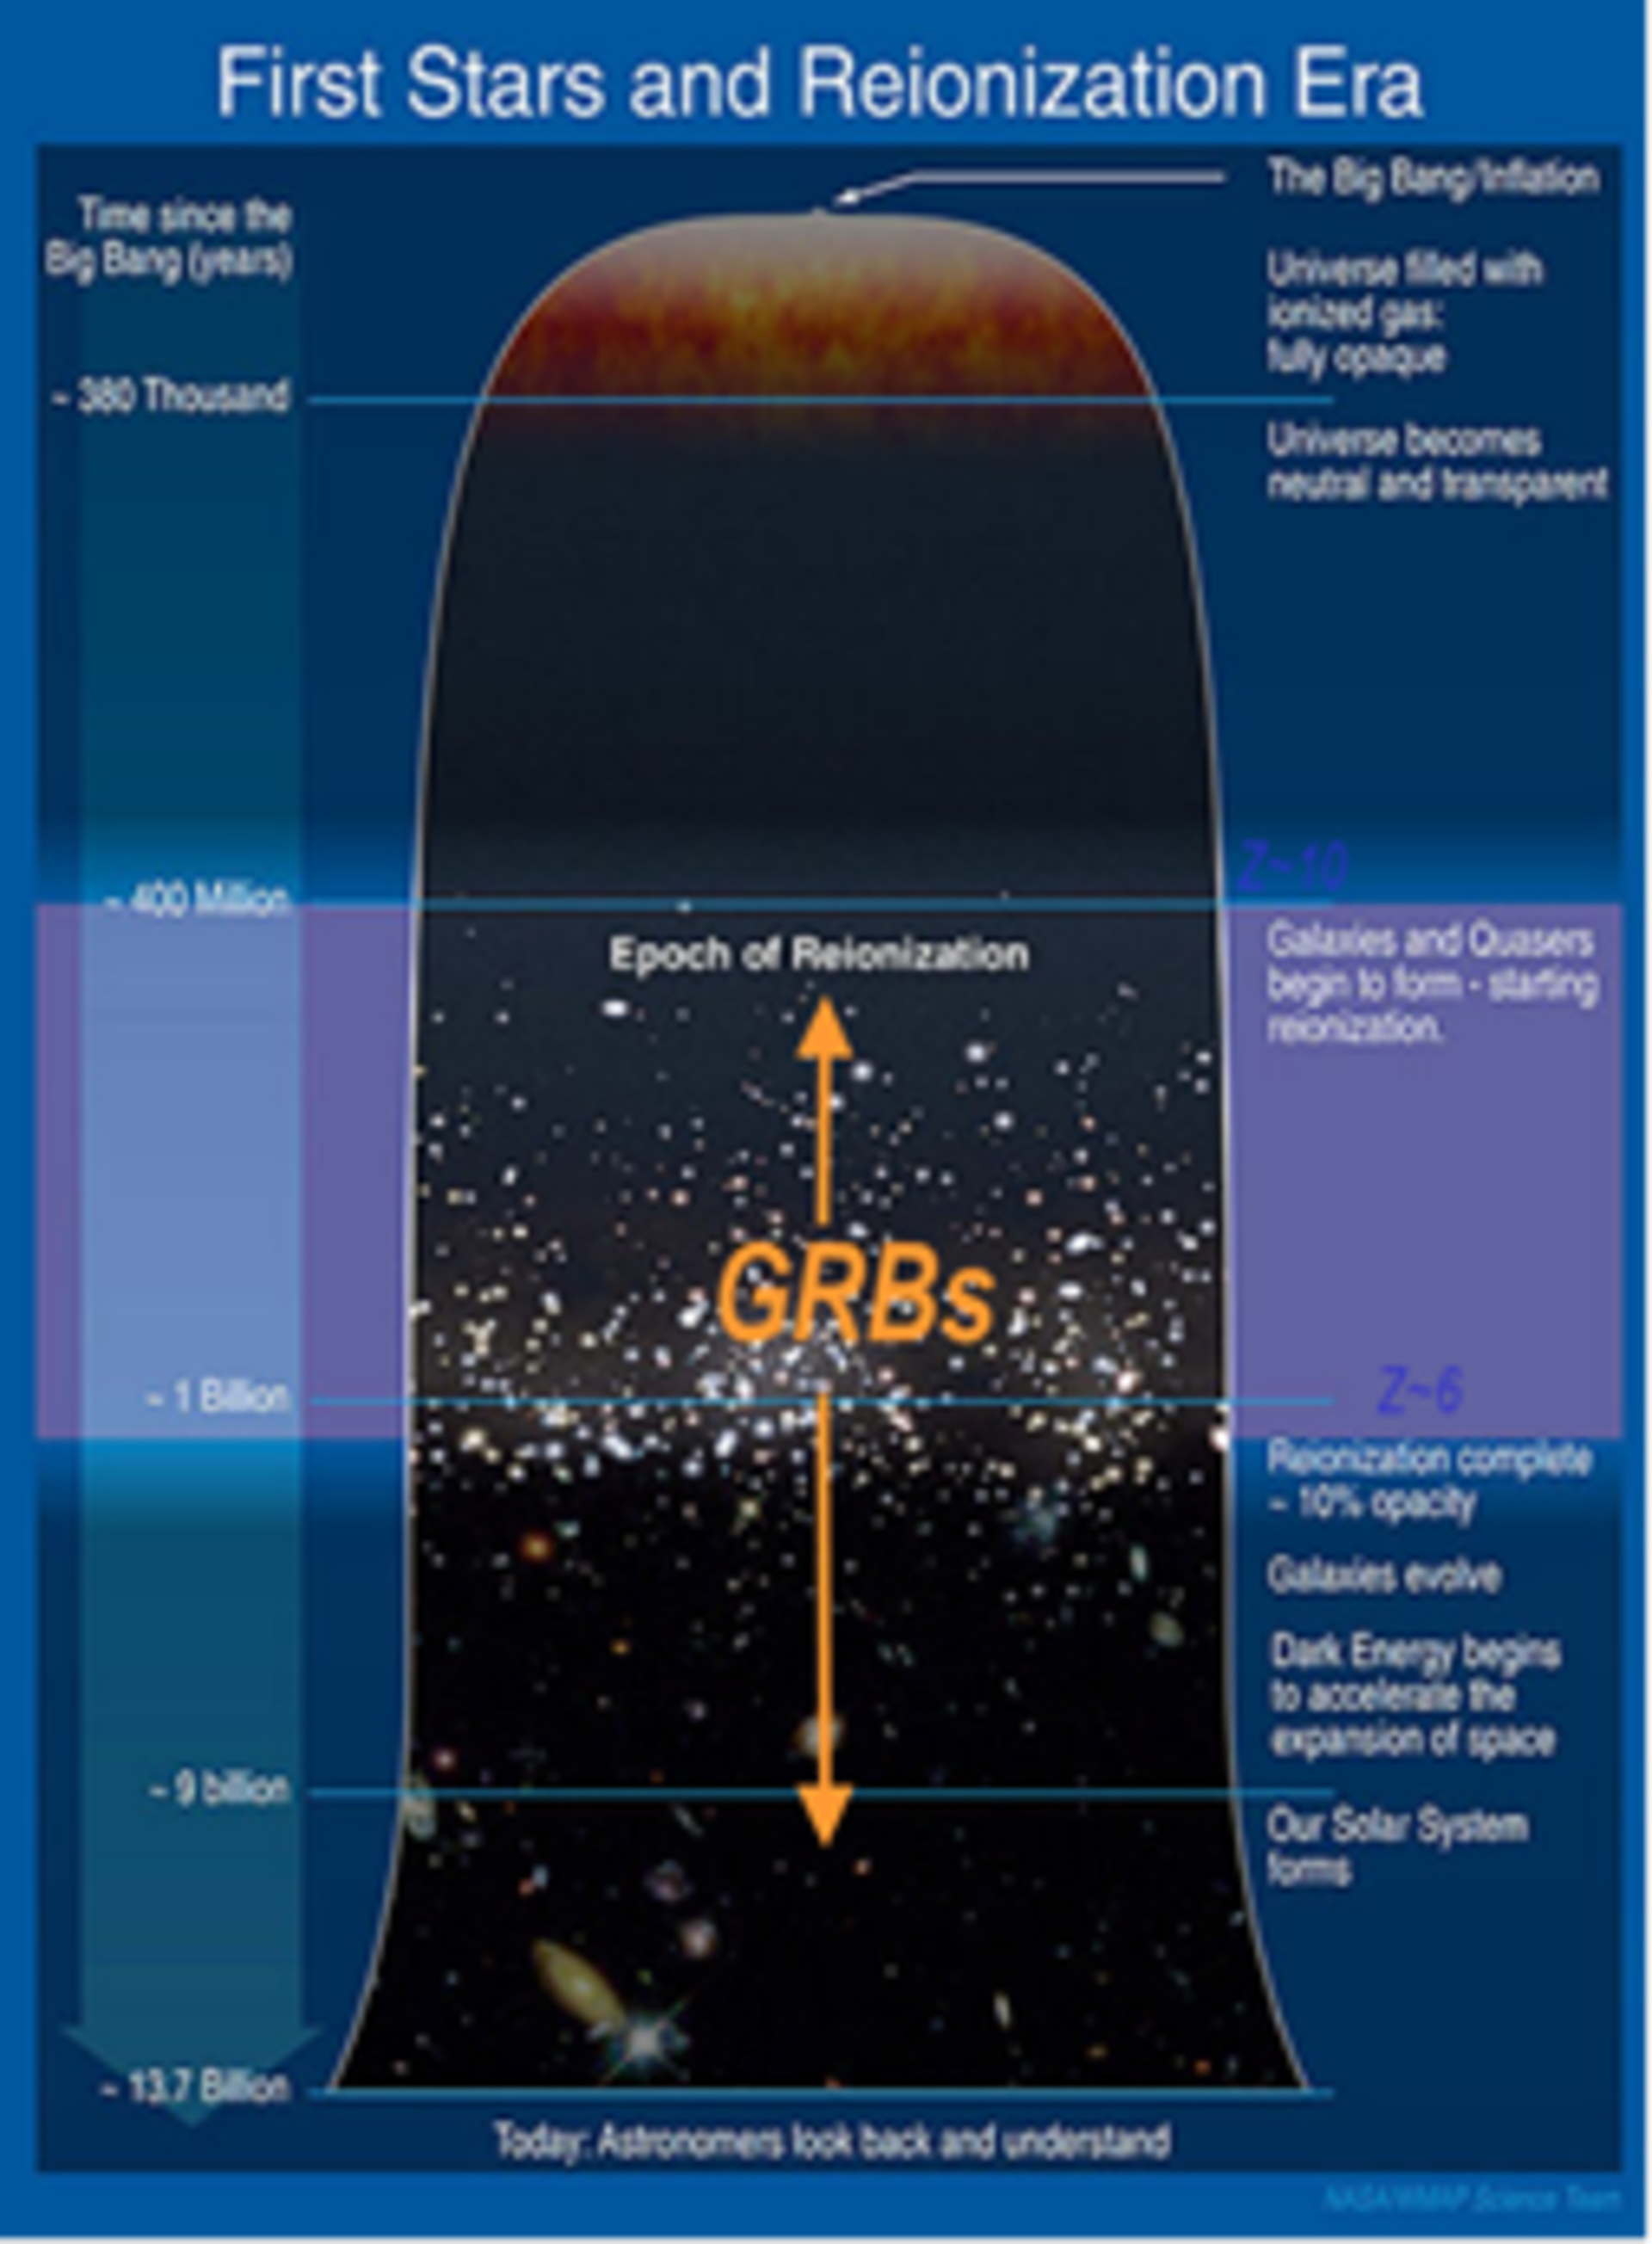 Gamma ray bursts in the early Universe